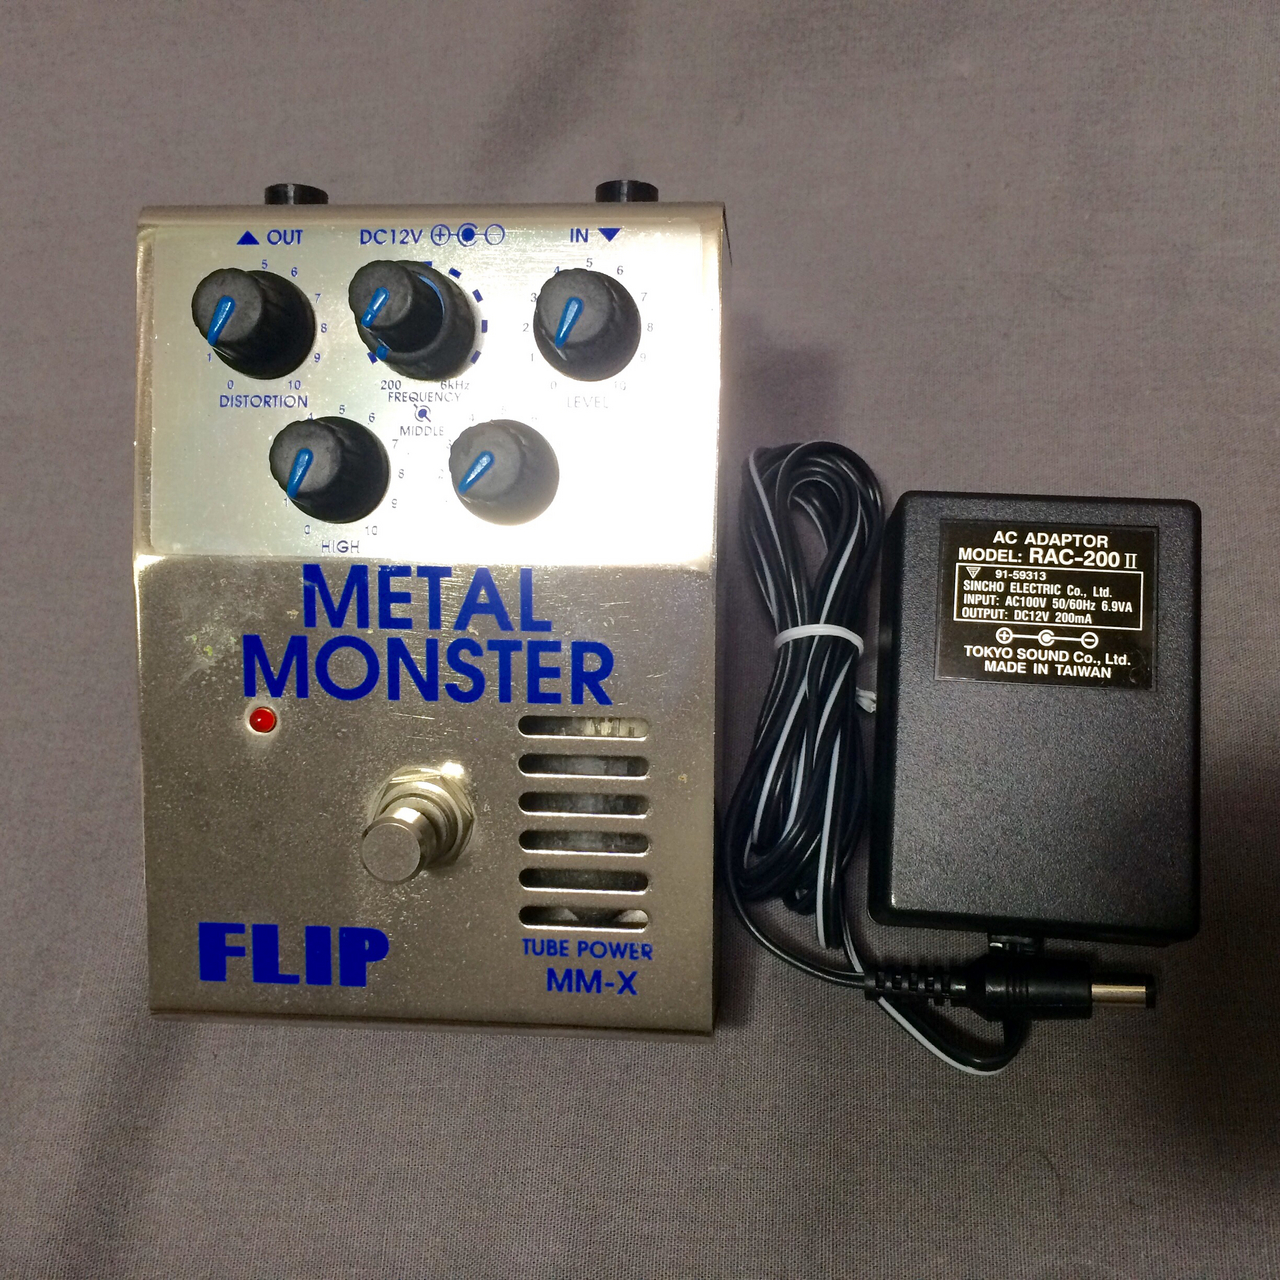 Guyatone Guyatone FLIP METAL MONSTER TUBE POWER MM-X